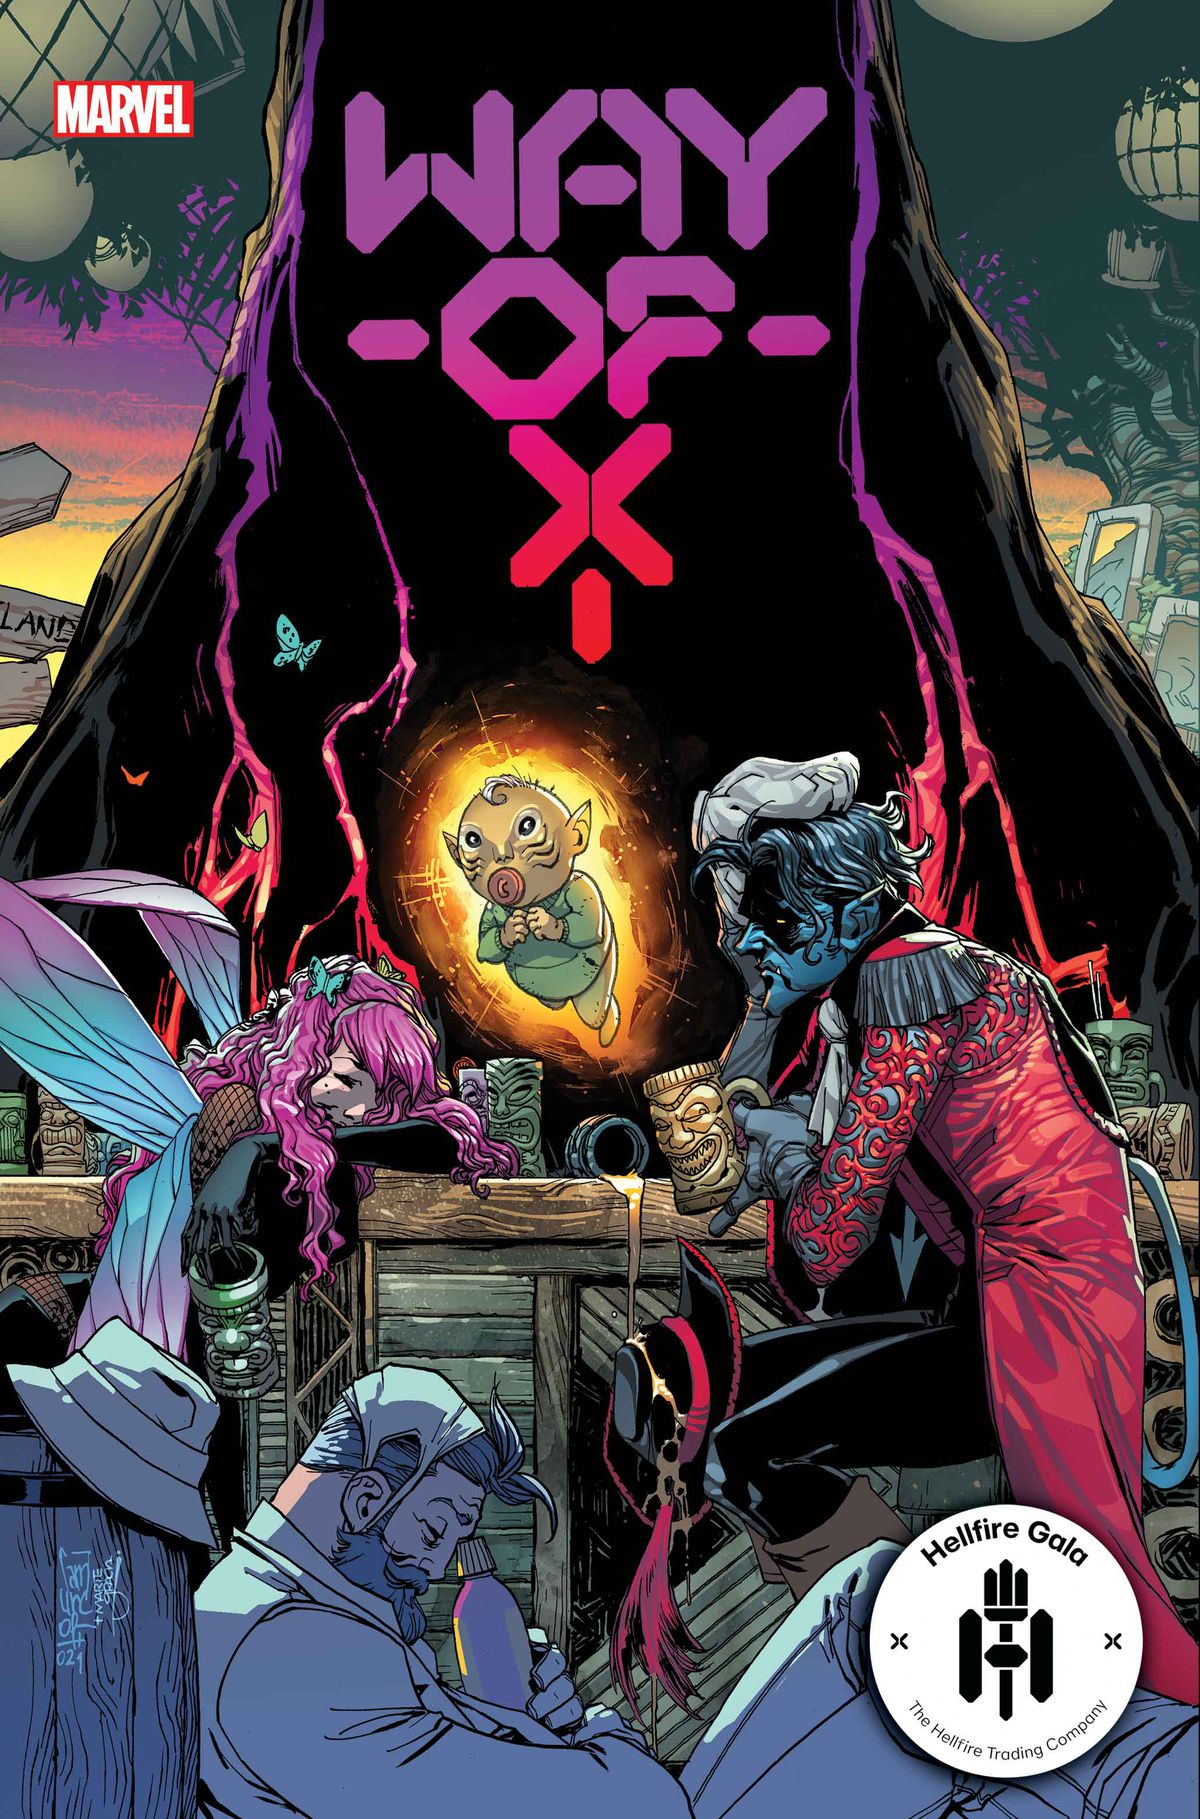 Nightcrawler is hungover as hell on the cover of Way of X #3, Marvel Comics (2021)